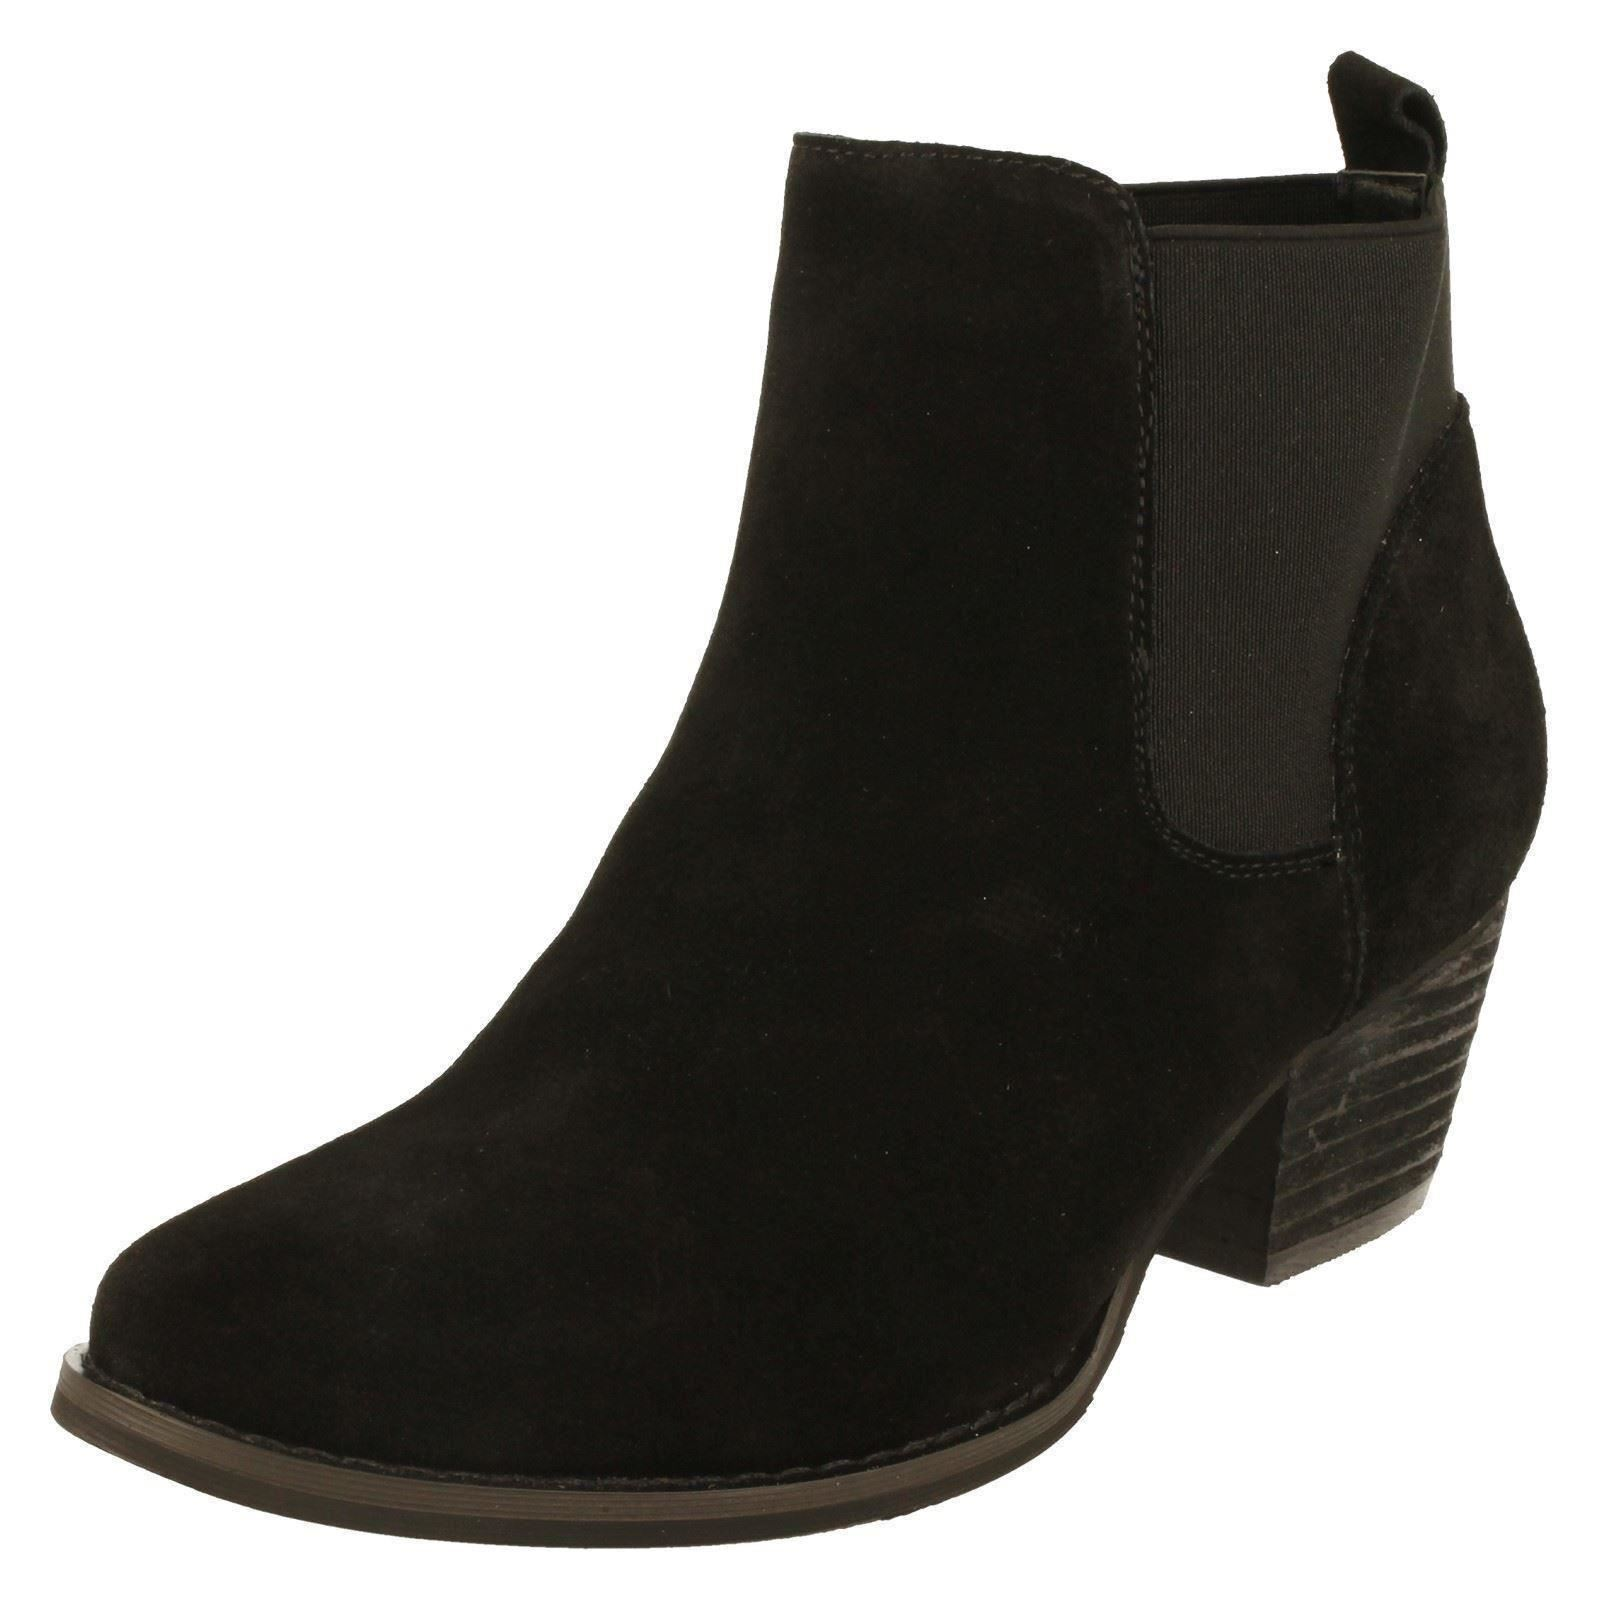 Down To Earth F5R0678 Ladies Ankle Boots Black Suede  (R33A)